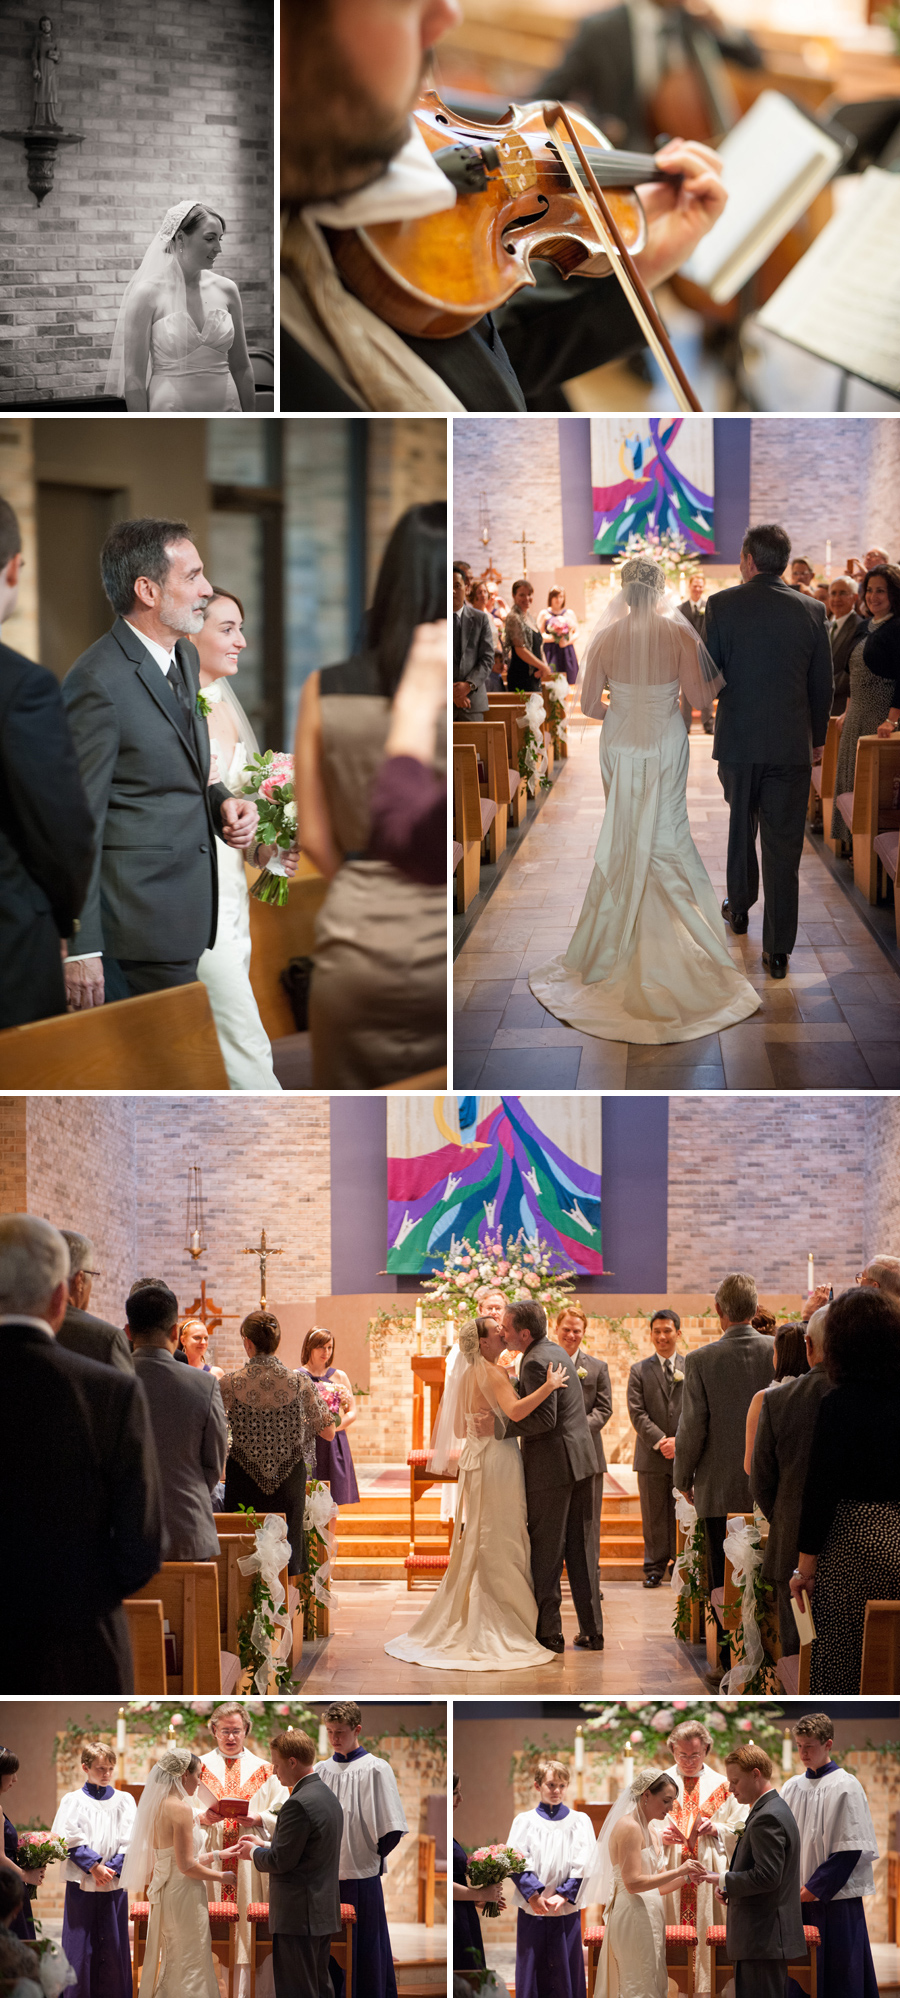 Jessica and Brian wedding at Our Lady of the Hills Catholic Church Columbia, SC